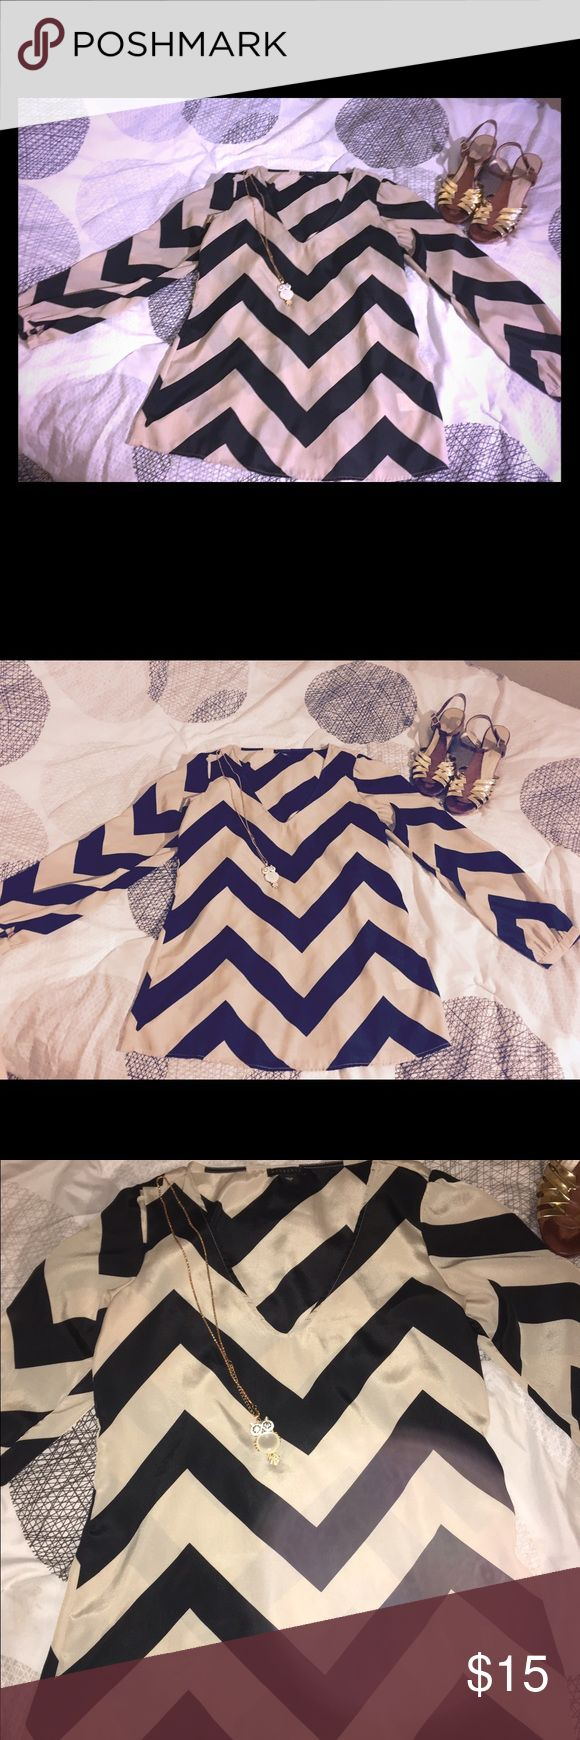 Chevron Blouse Size Medium LIKE NEW Beautiful comfortable cheveron pattern blouse. Goes great with leggings or jeans. No flaws. Tops